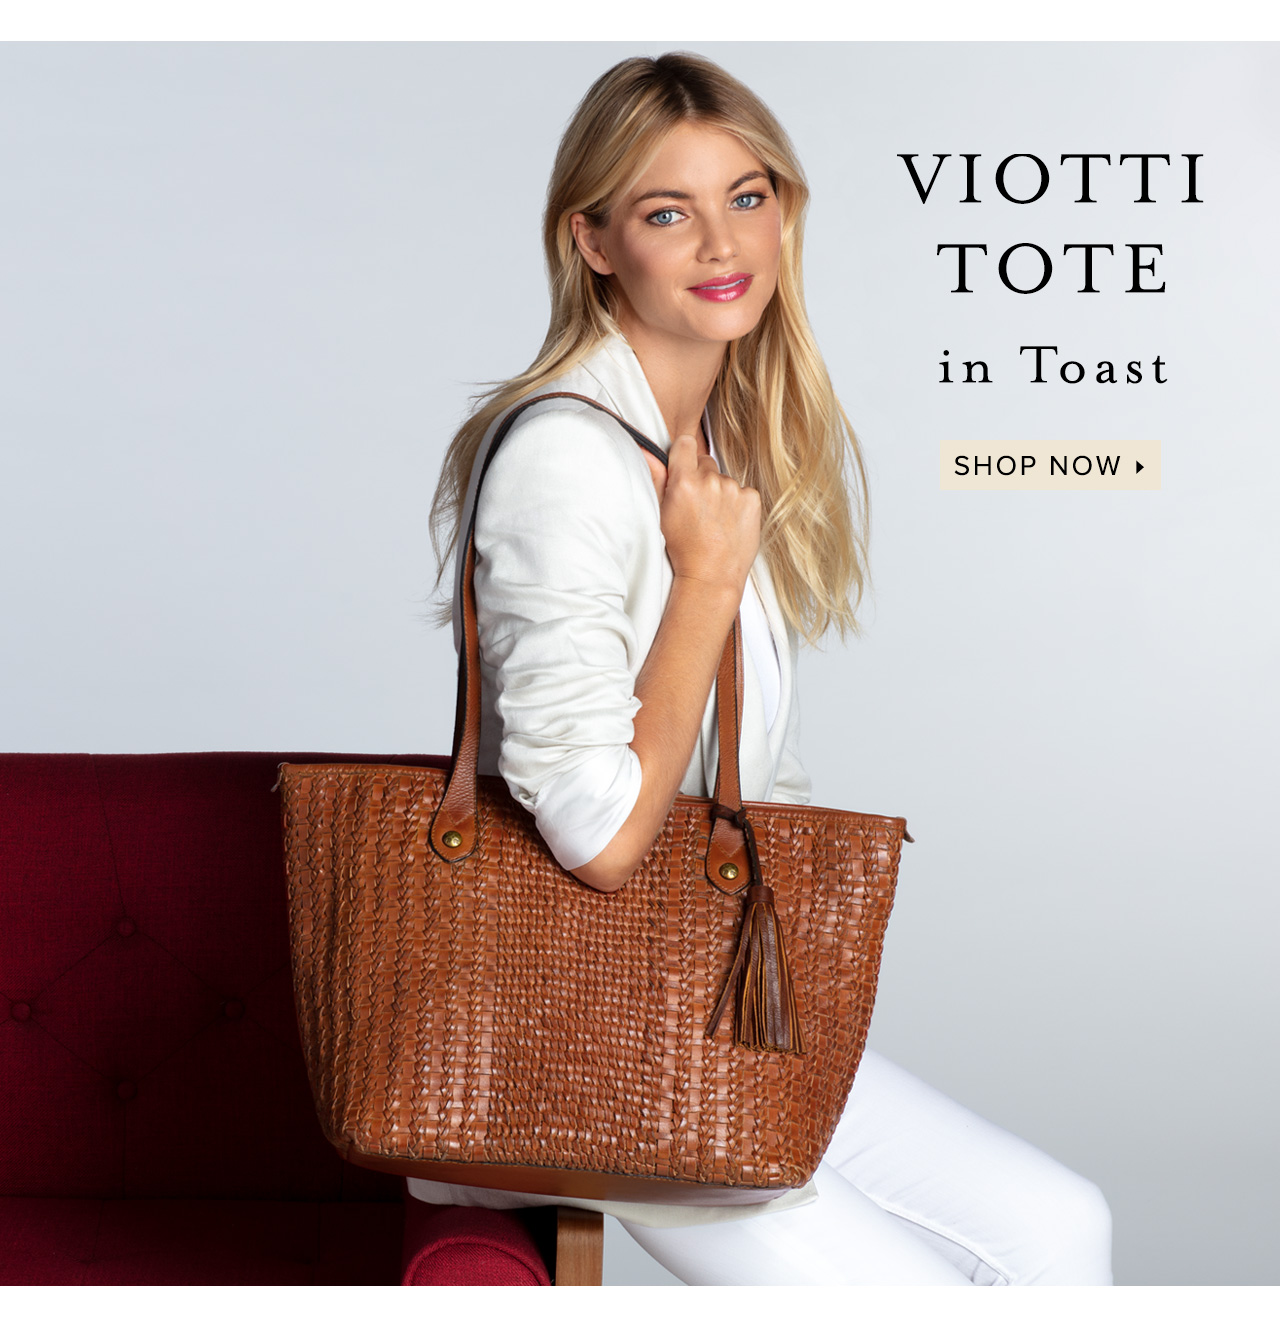 7863bf1355be Shop the Viotti Tote in Woven Braided Toast